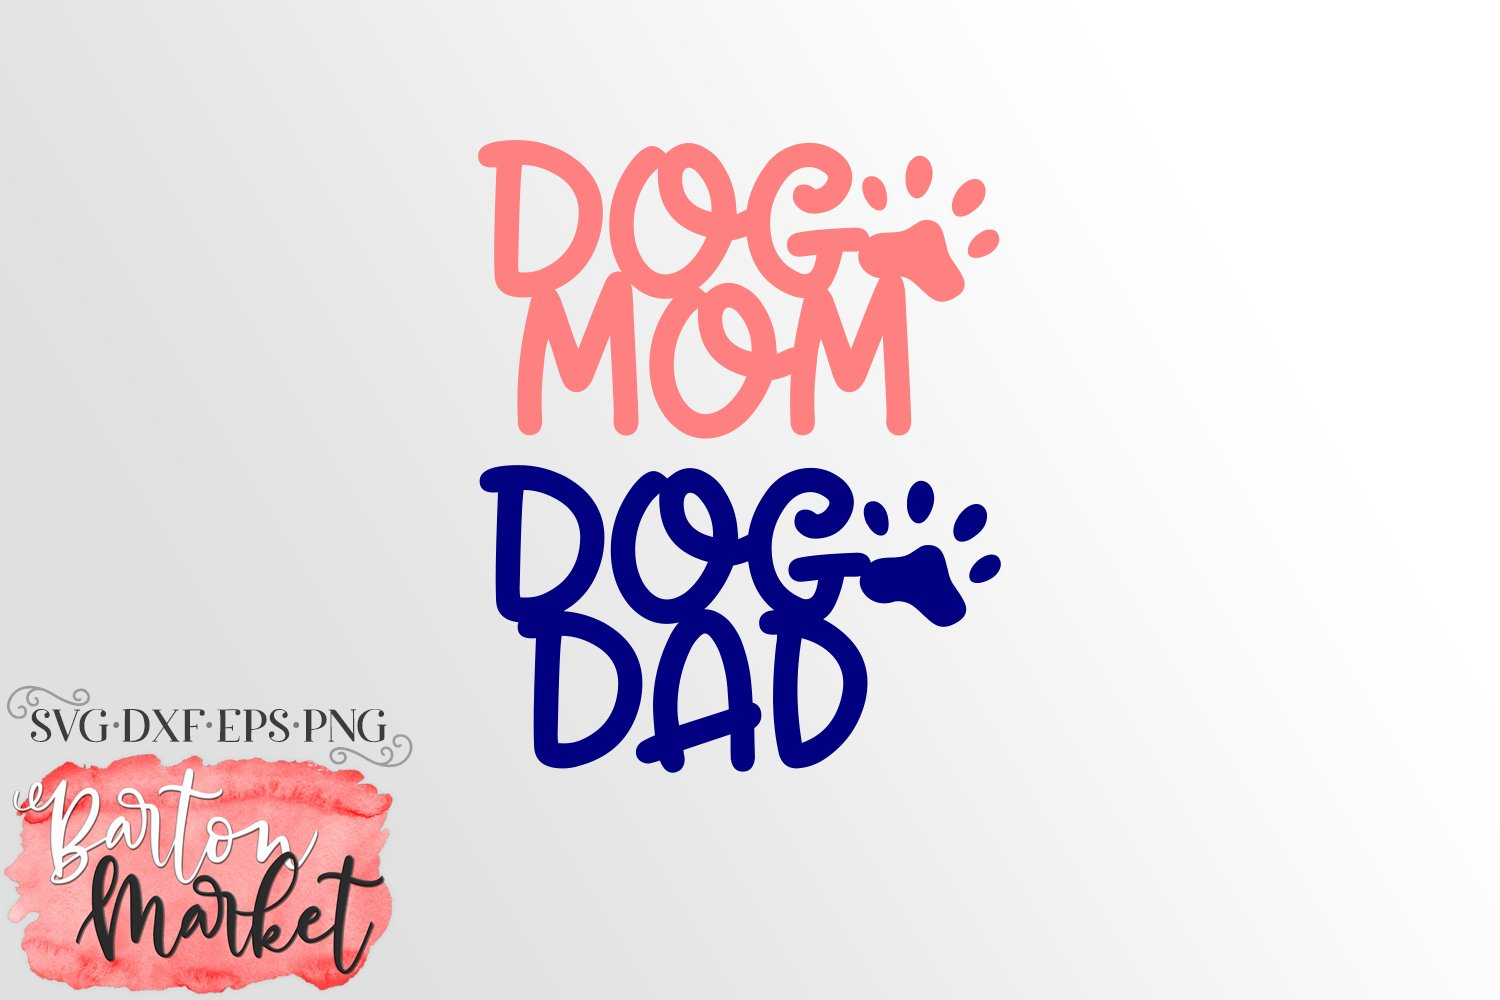 Dog Mom Dog Dad SVG DXF EPS PNG example image 2